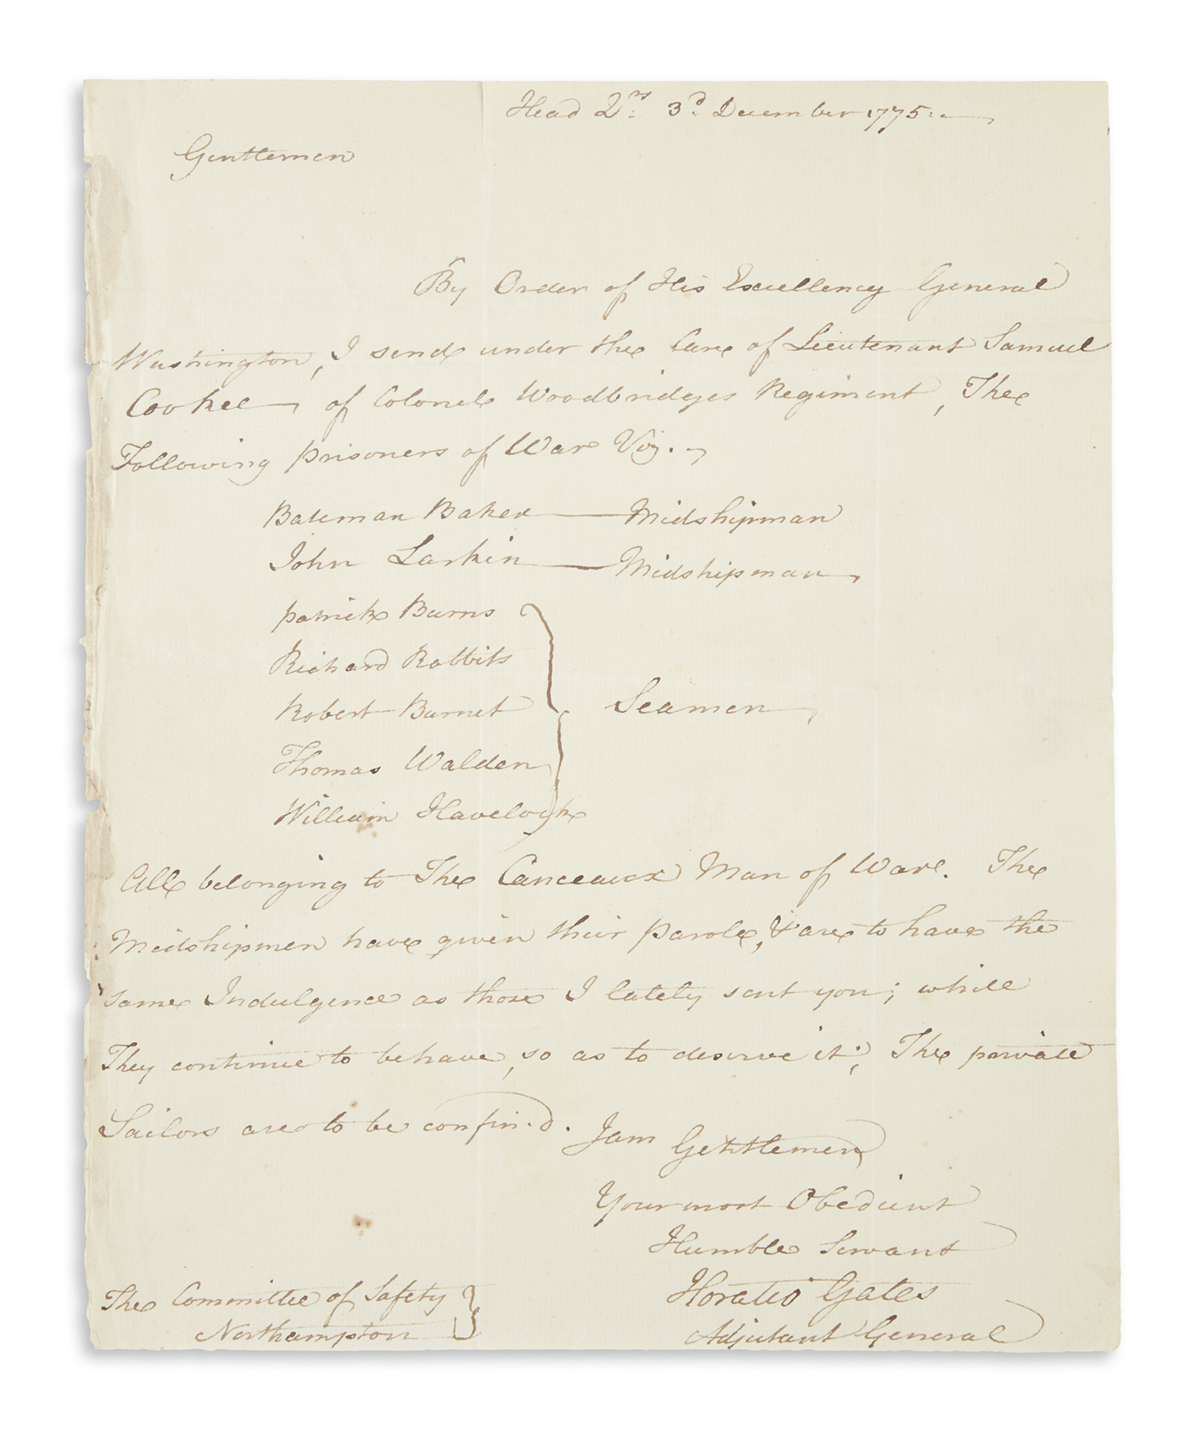 GATES, HORATIO. Autograph Letter Signed, to the Chairman of the Committee of Safety at Northampton, MA [Seth Pomeroy?],